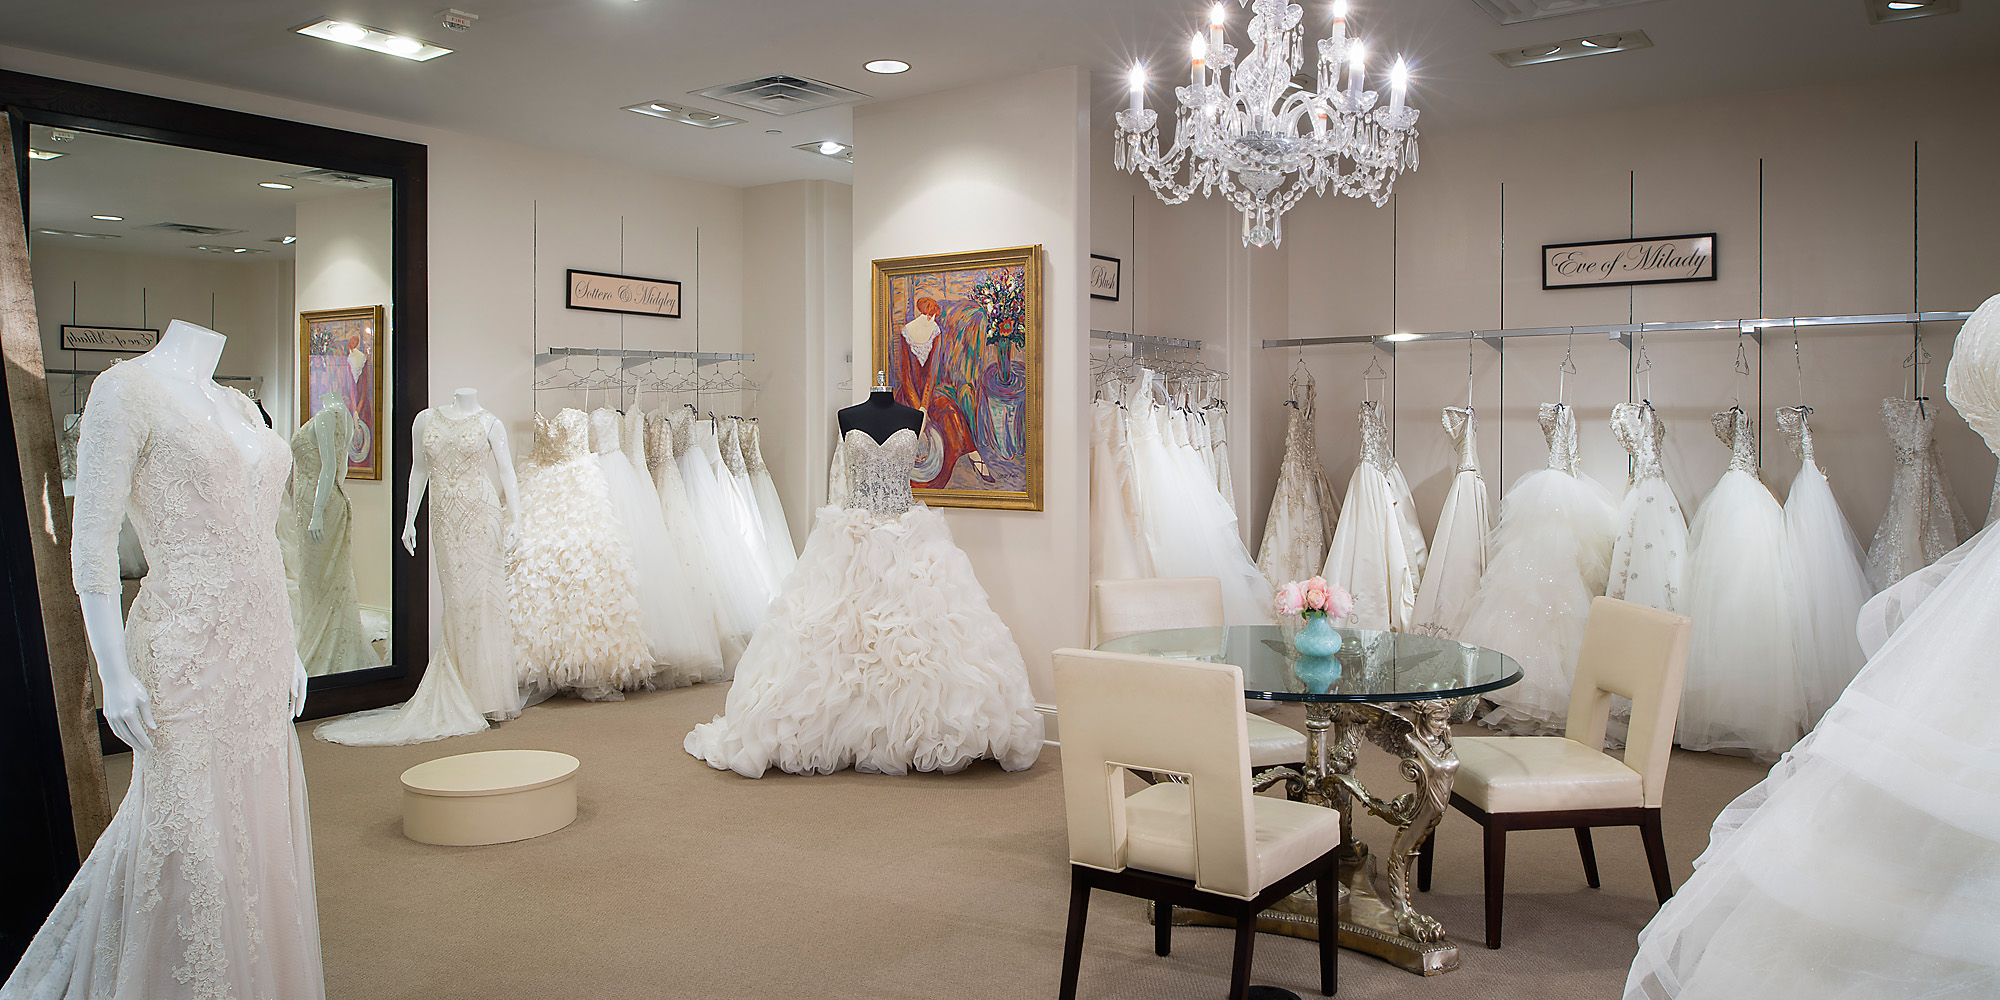 Wedding dresses stardust celebrations dallas wedding dresses stardust celebrations junglespirit Gallery